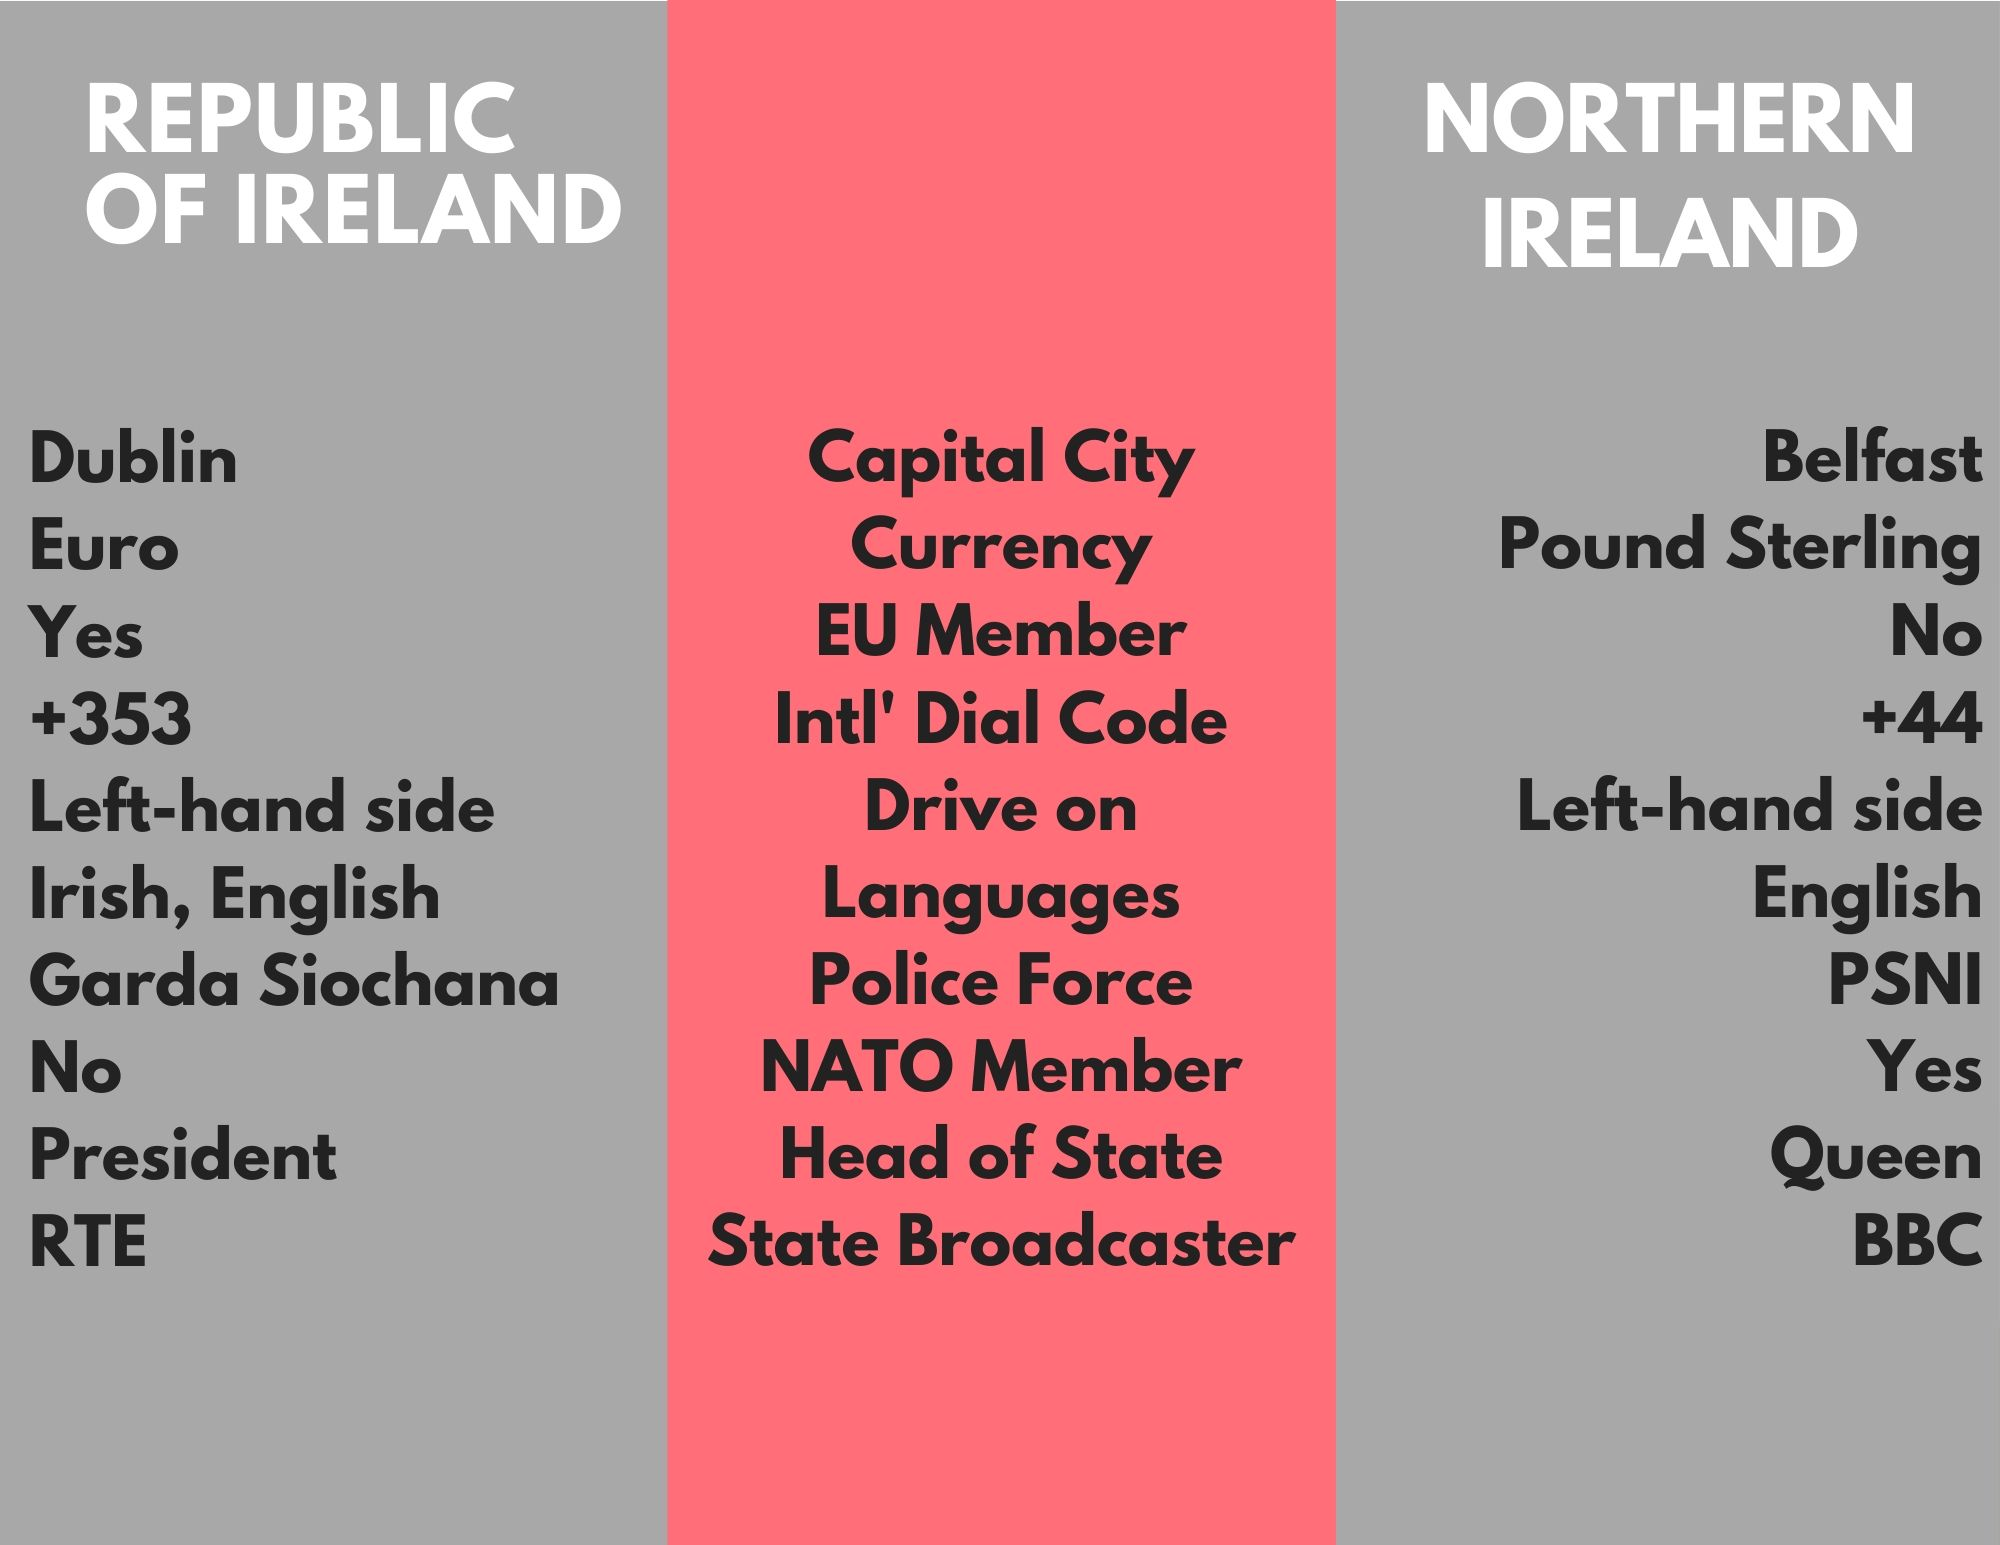 Difference between Republic of Ireland and Northern Ireland